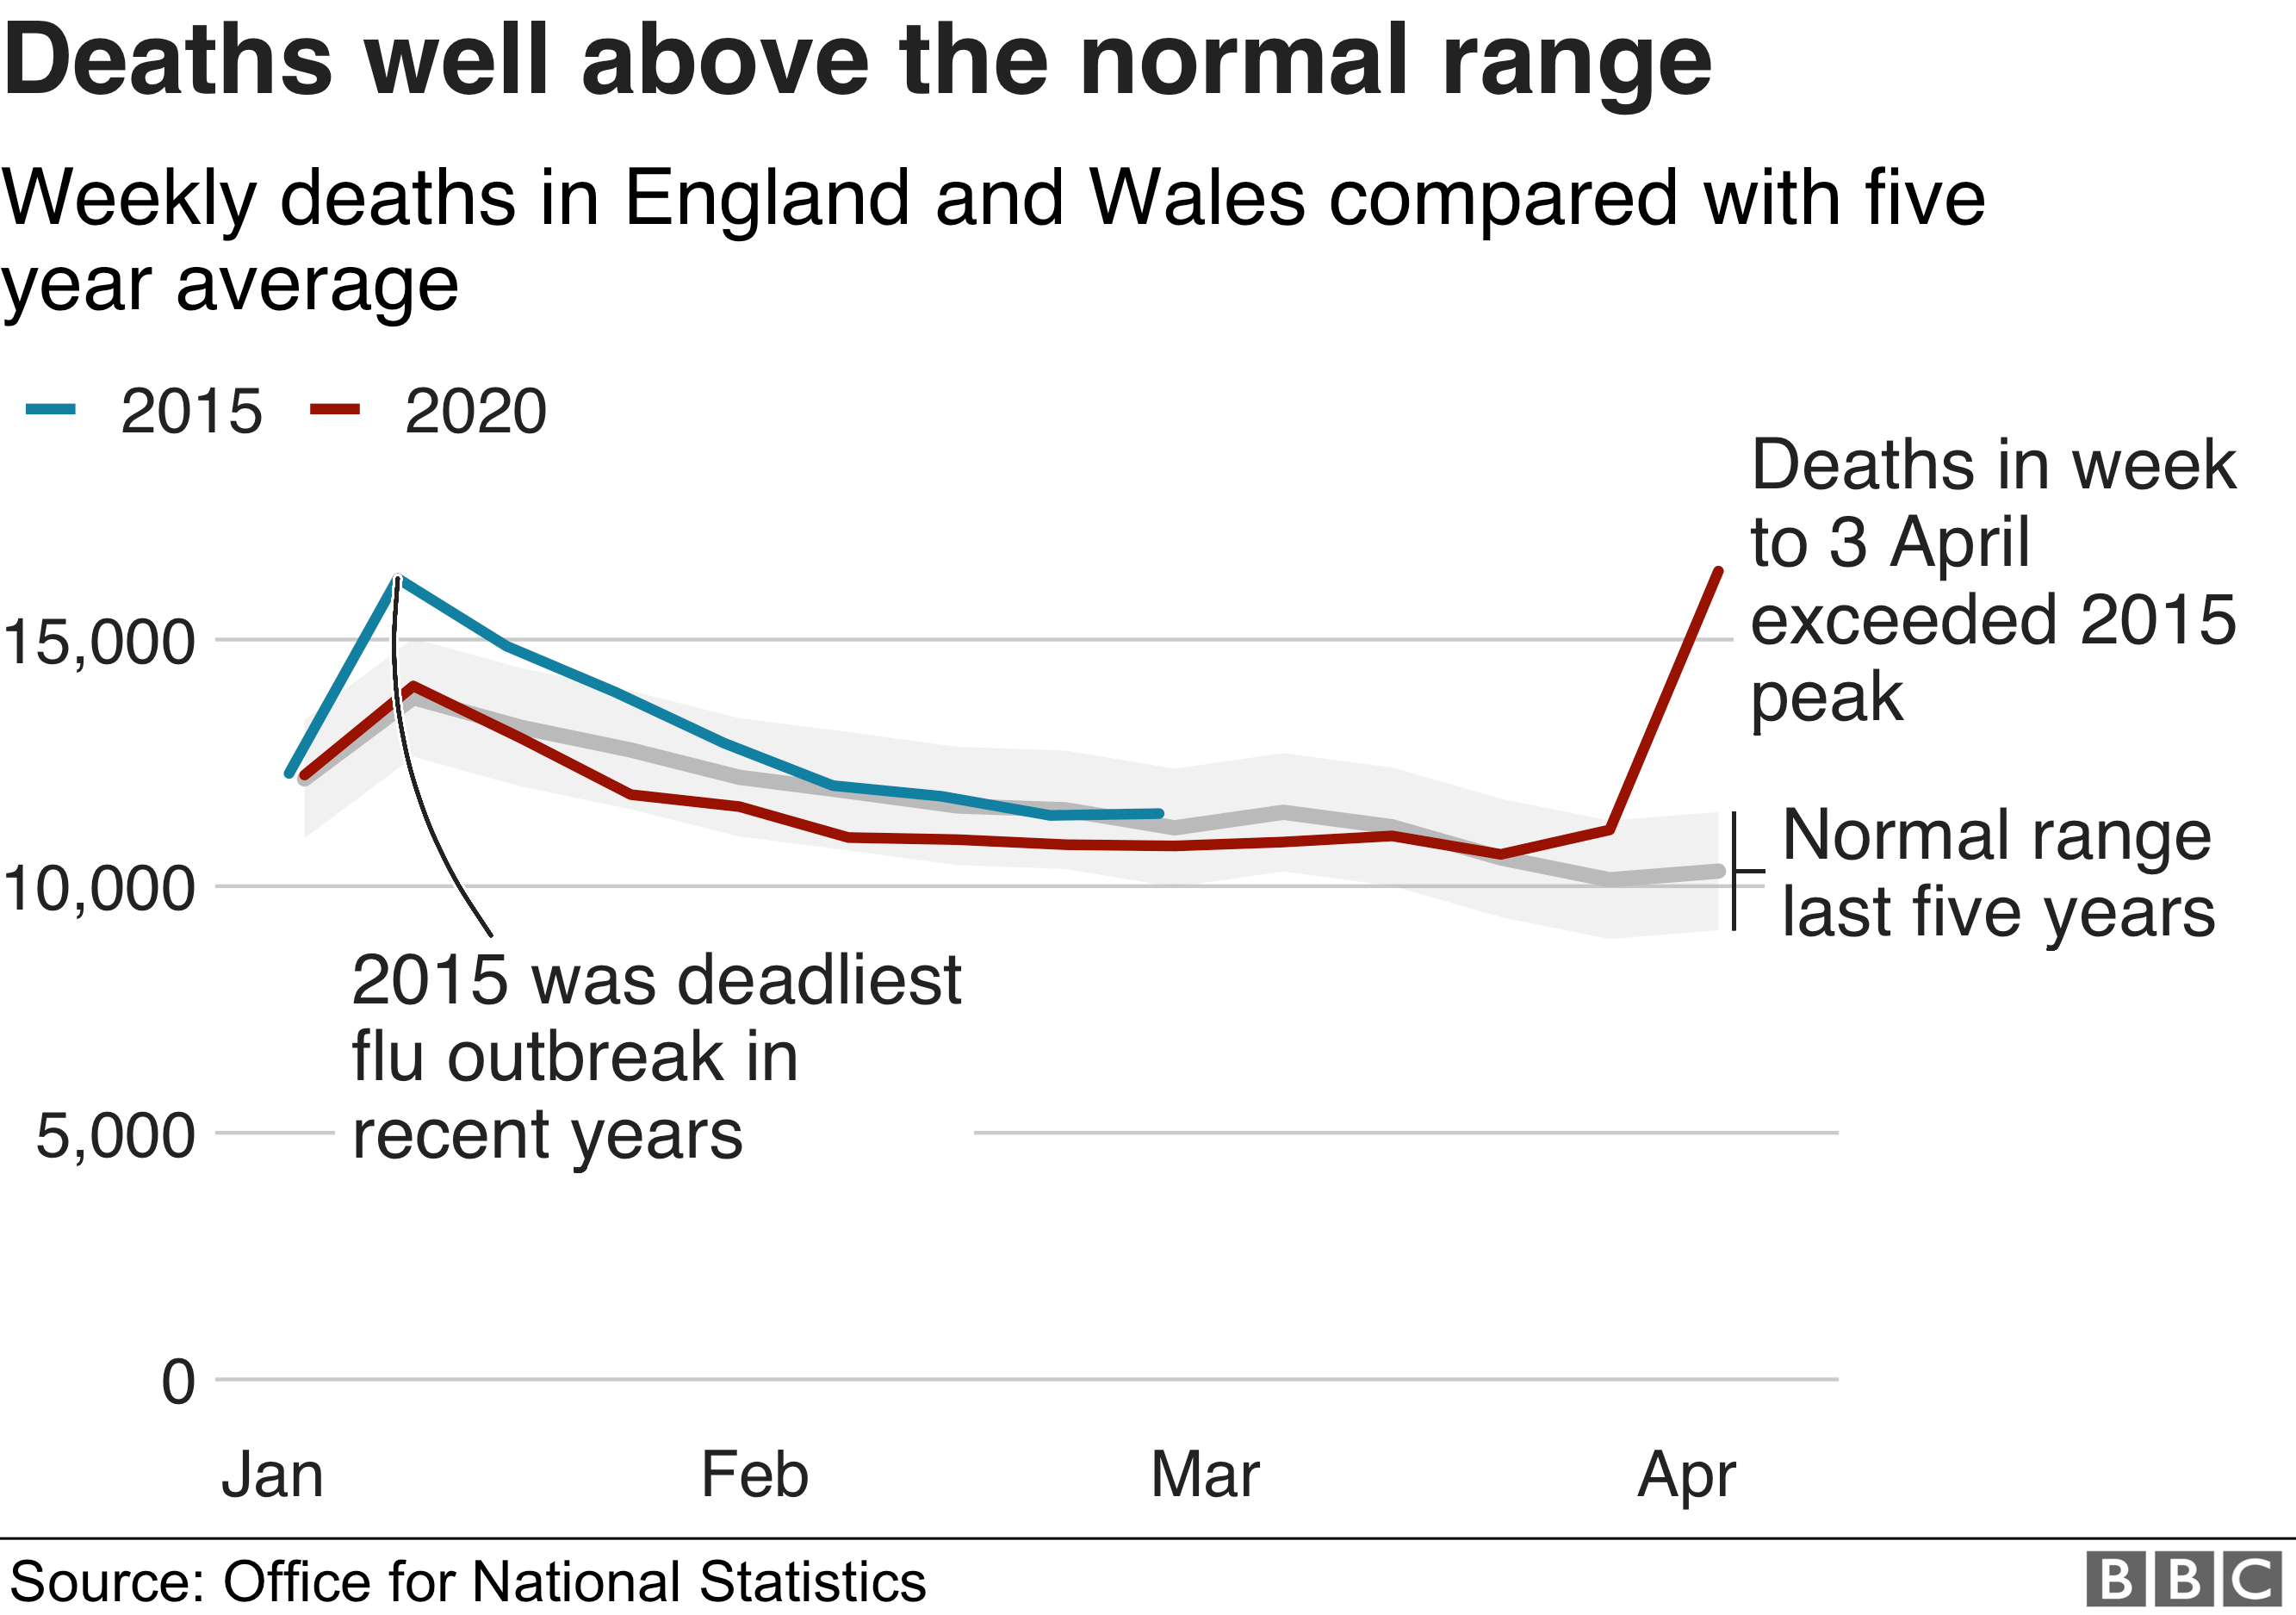 deaths well above normal range - line chart